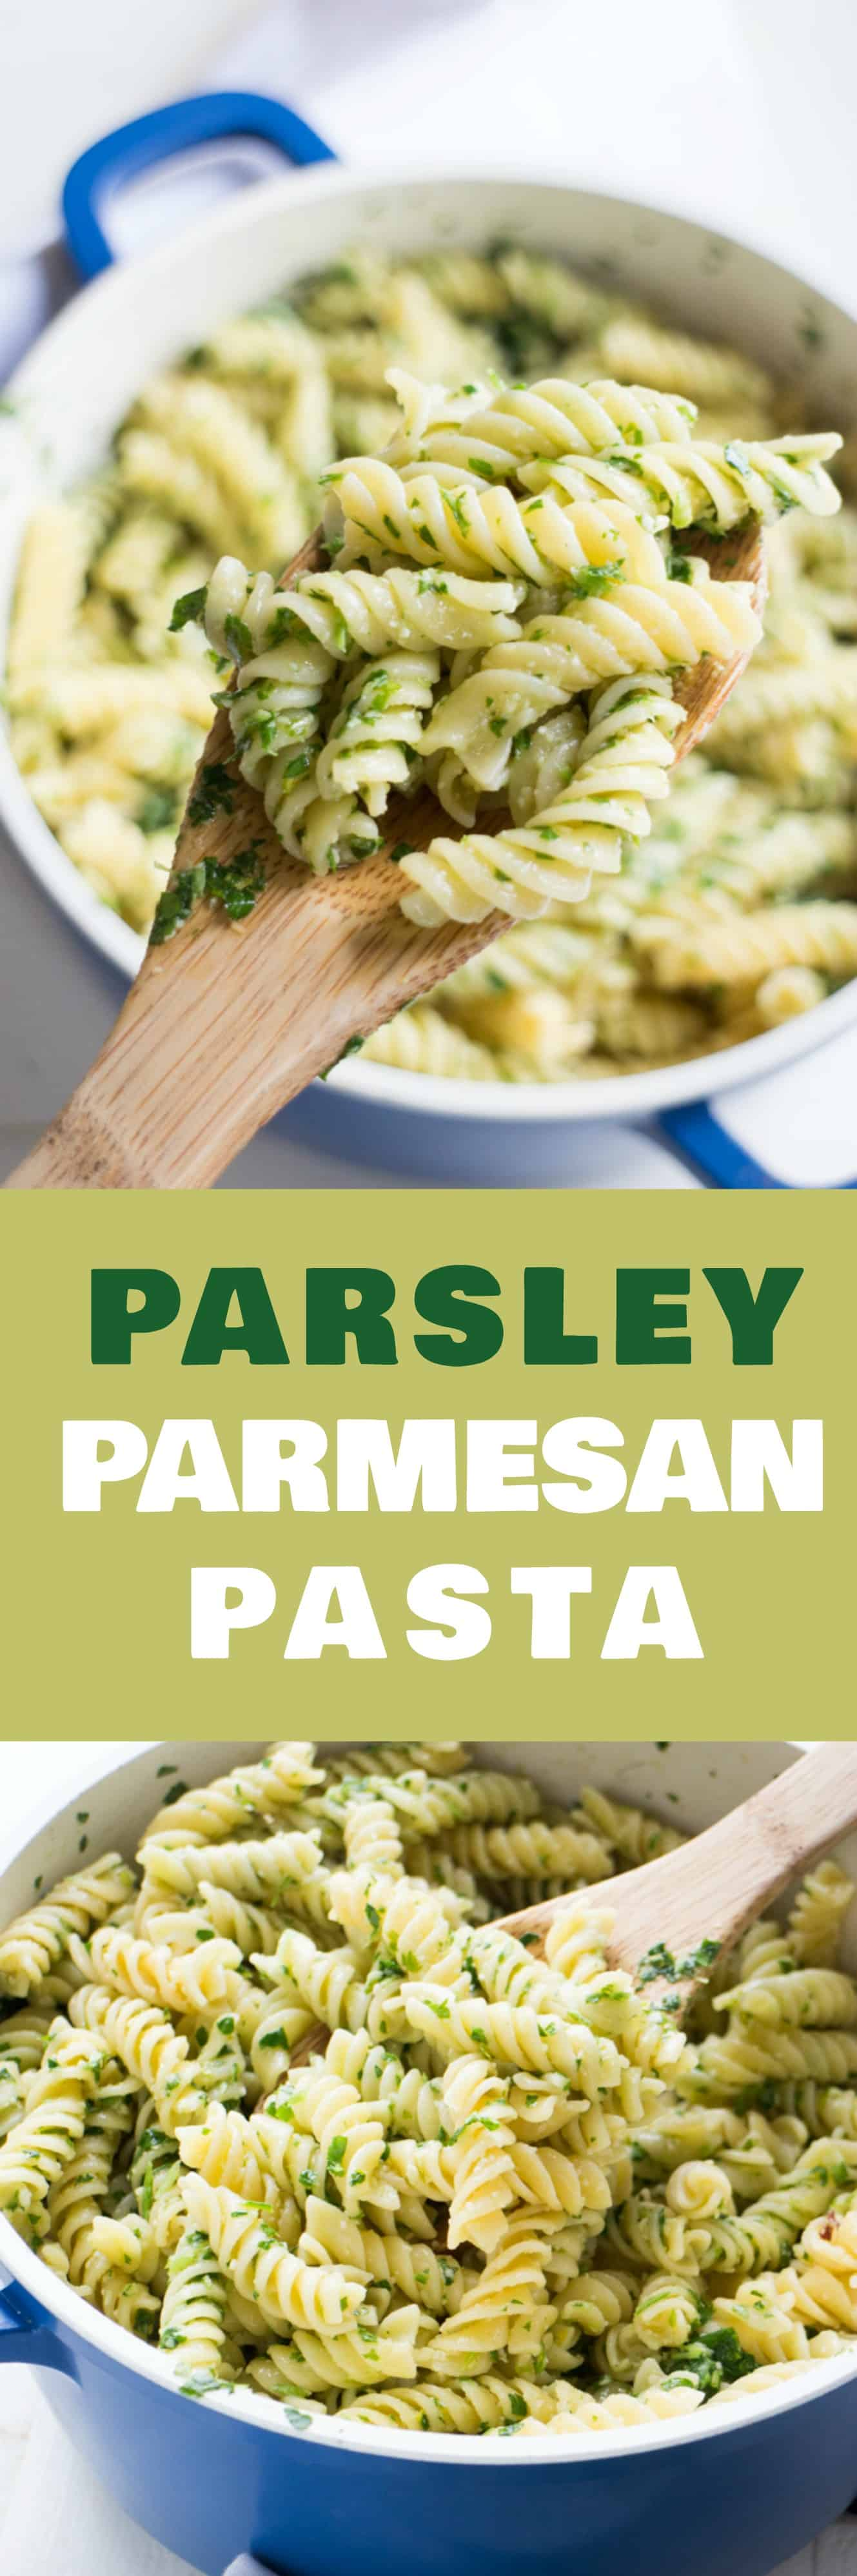 PARSLEY PARMESAN PASTA takes 15 minutes to make! This healthy meal using fresh parsley costs less than $4! Blend the parsley with other simple ingredients to make a nut free pesto sauce and then pour on top of pasta! It's delicious and easy to make!